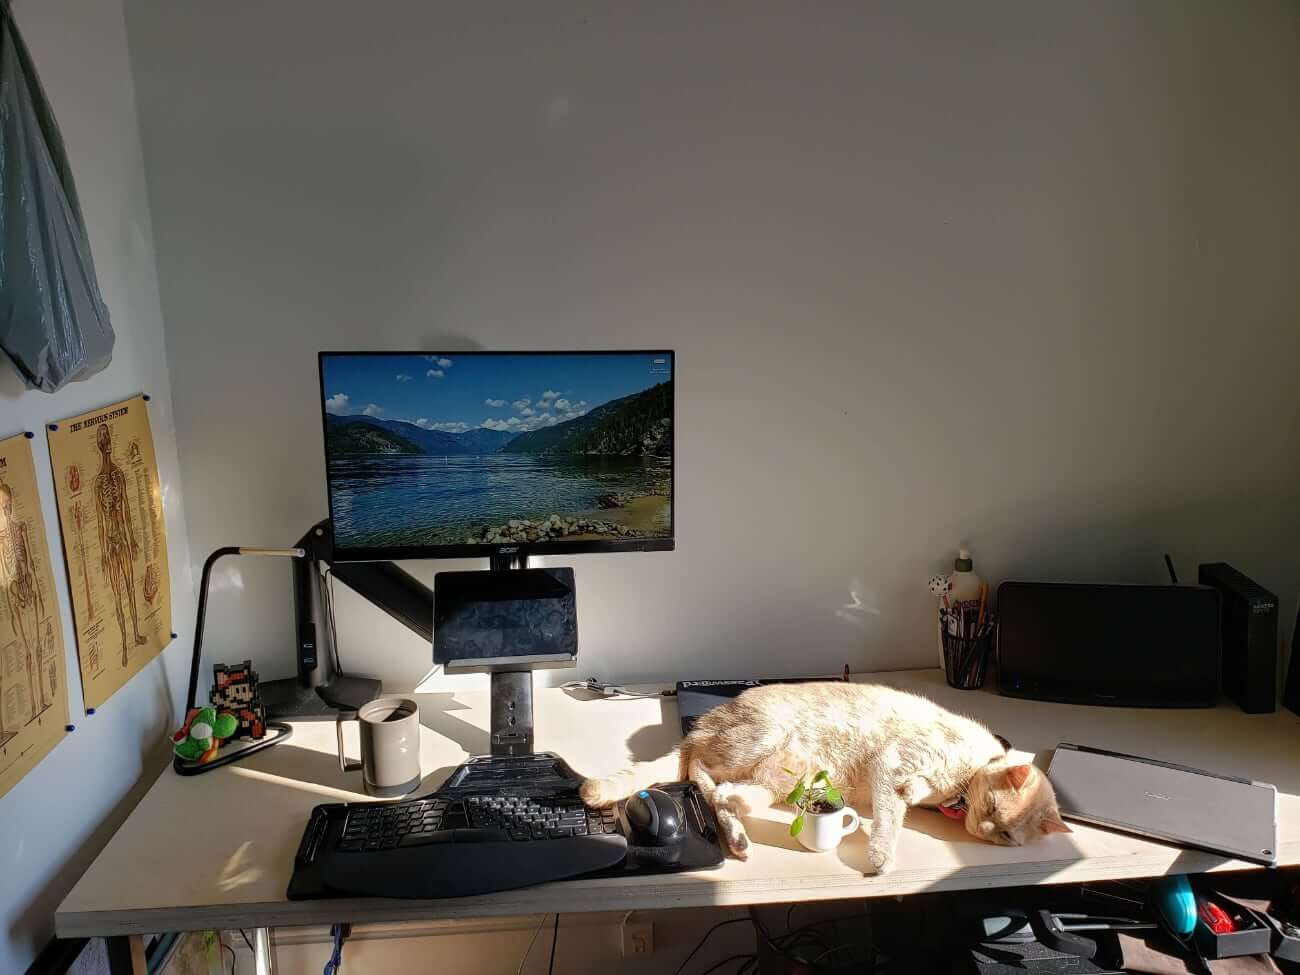 Image of Dayton's work from home setup